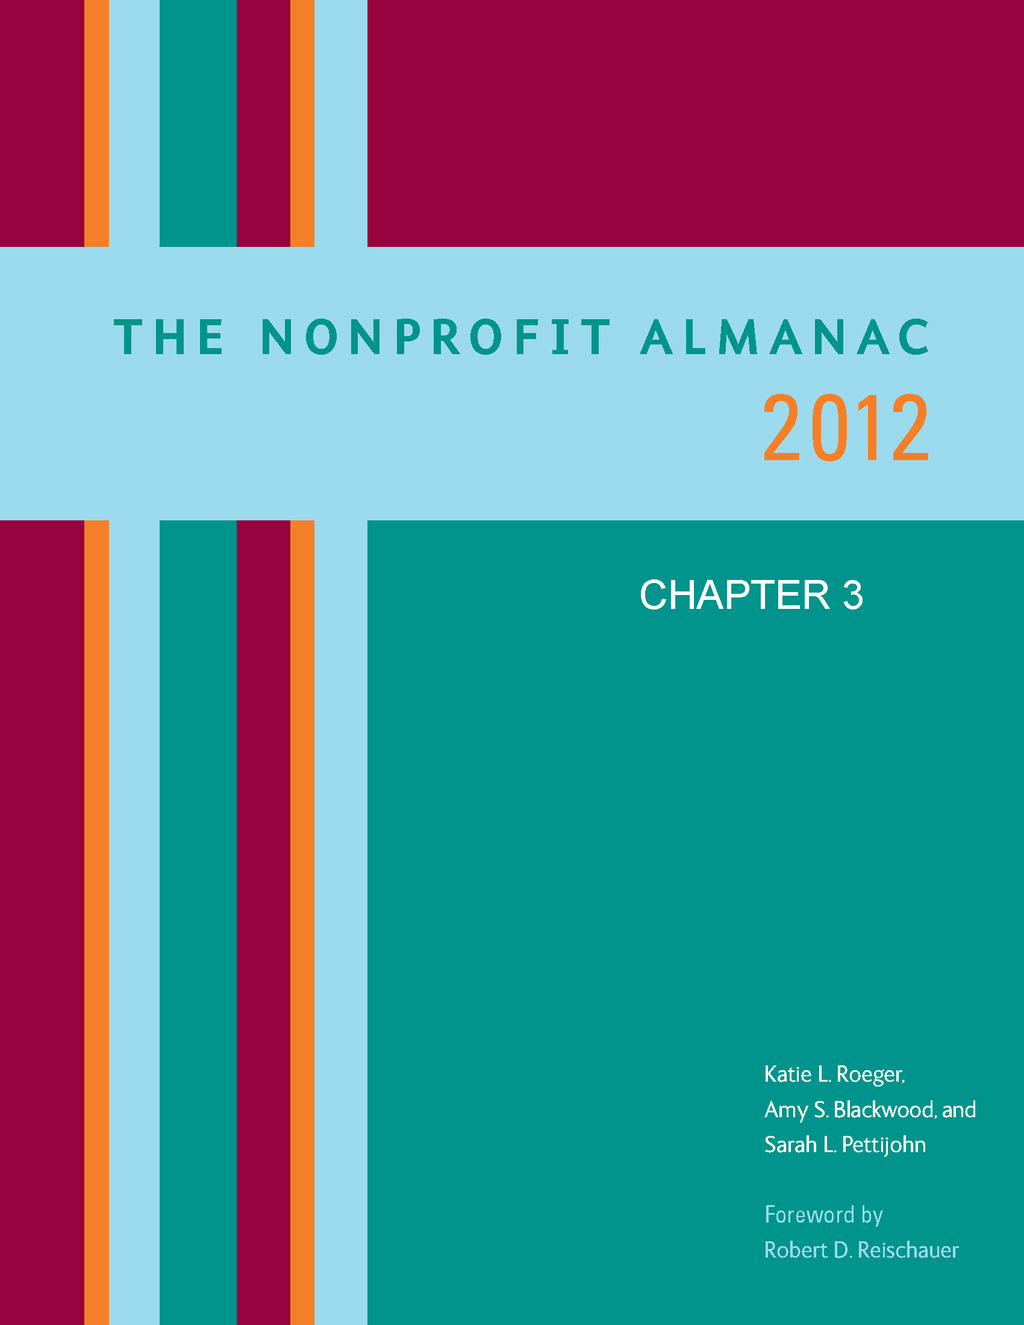 The Nonprofit Almanac 2012 By: Amy S. Blackwood,Katie L. Roeger